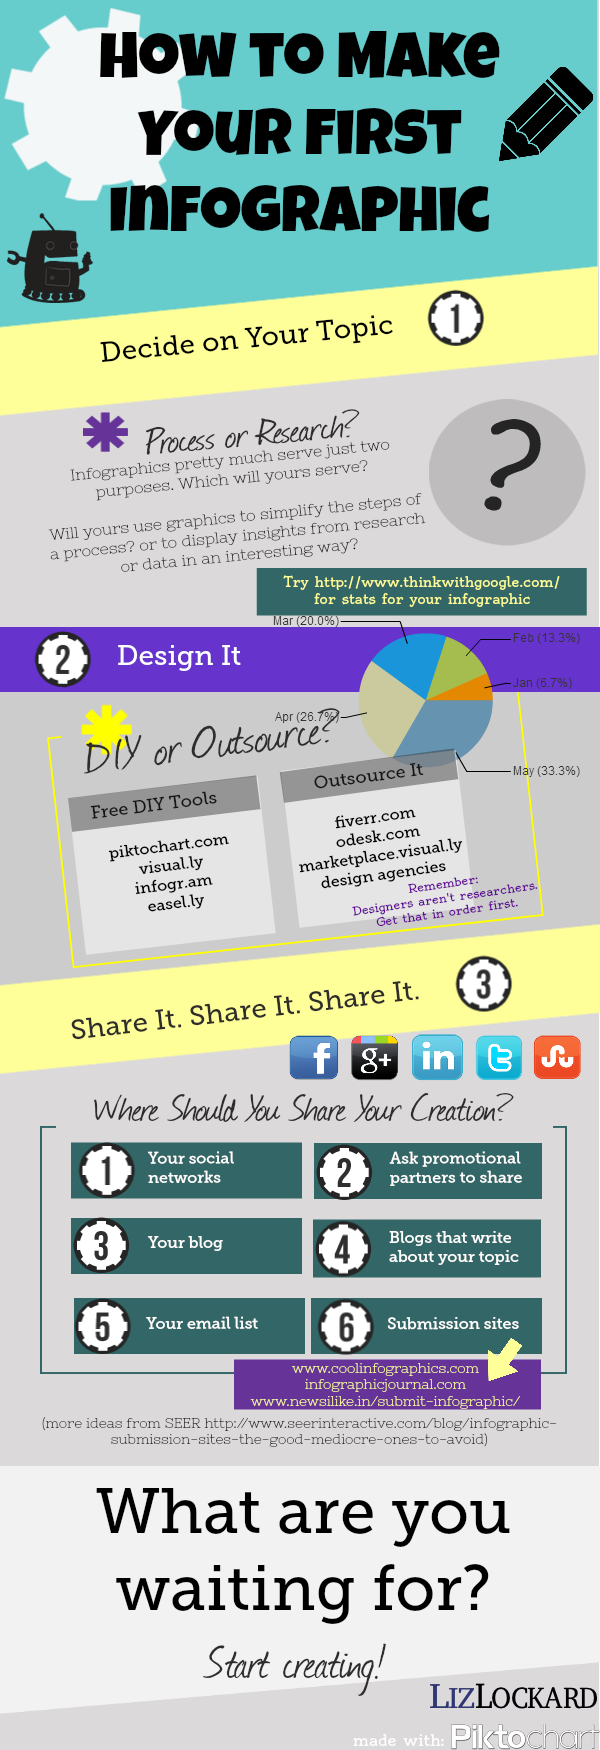 How to Create Your First Infographic